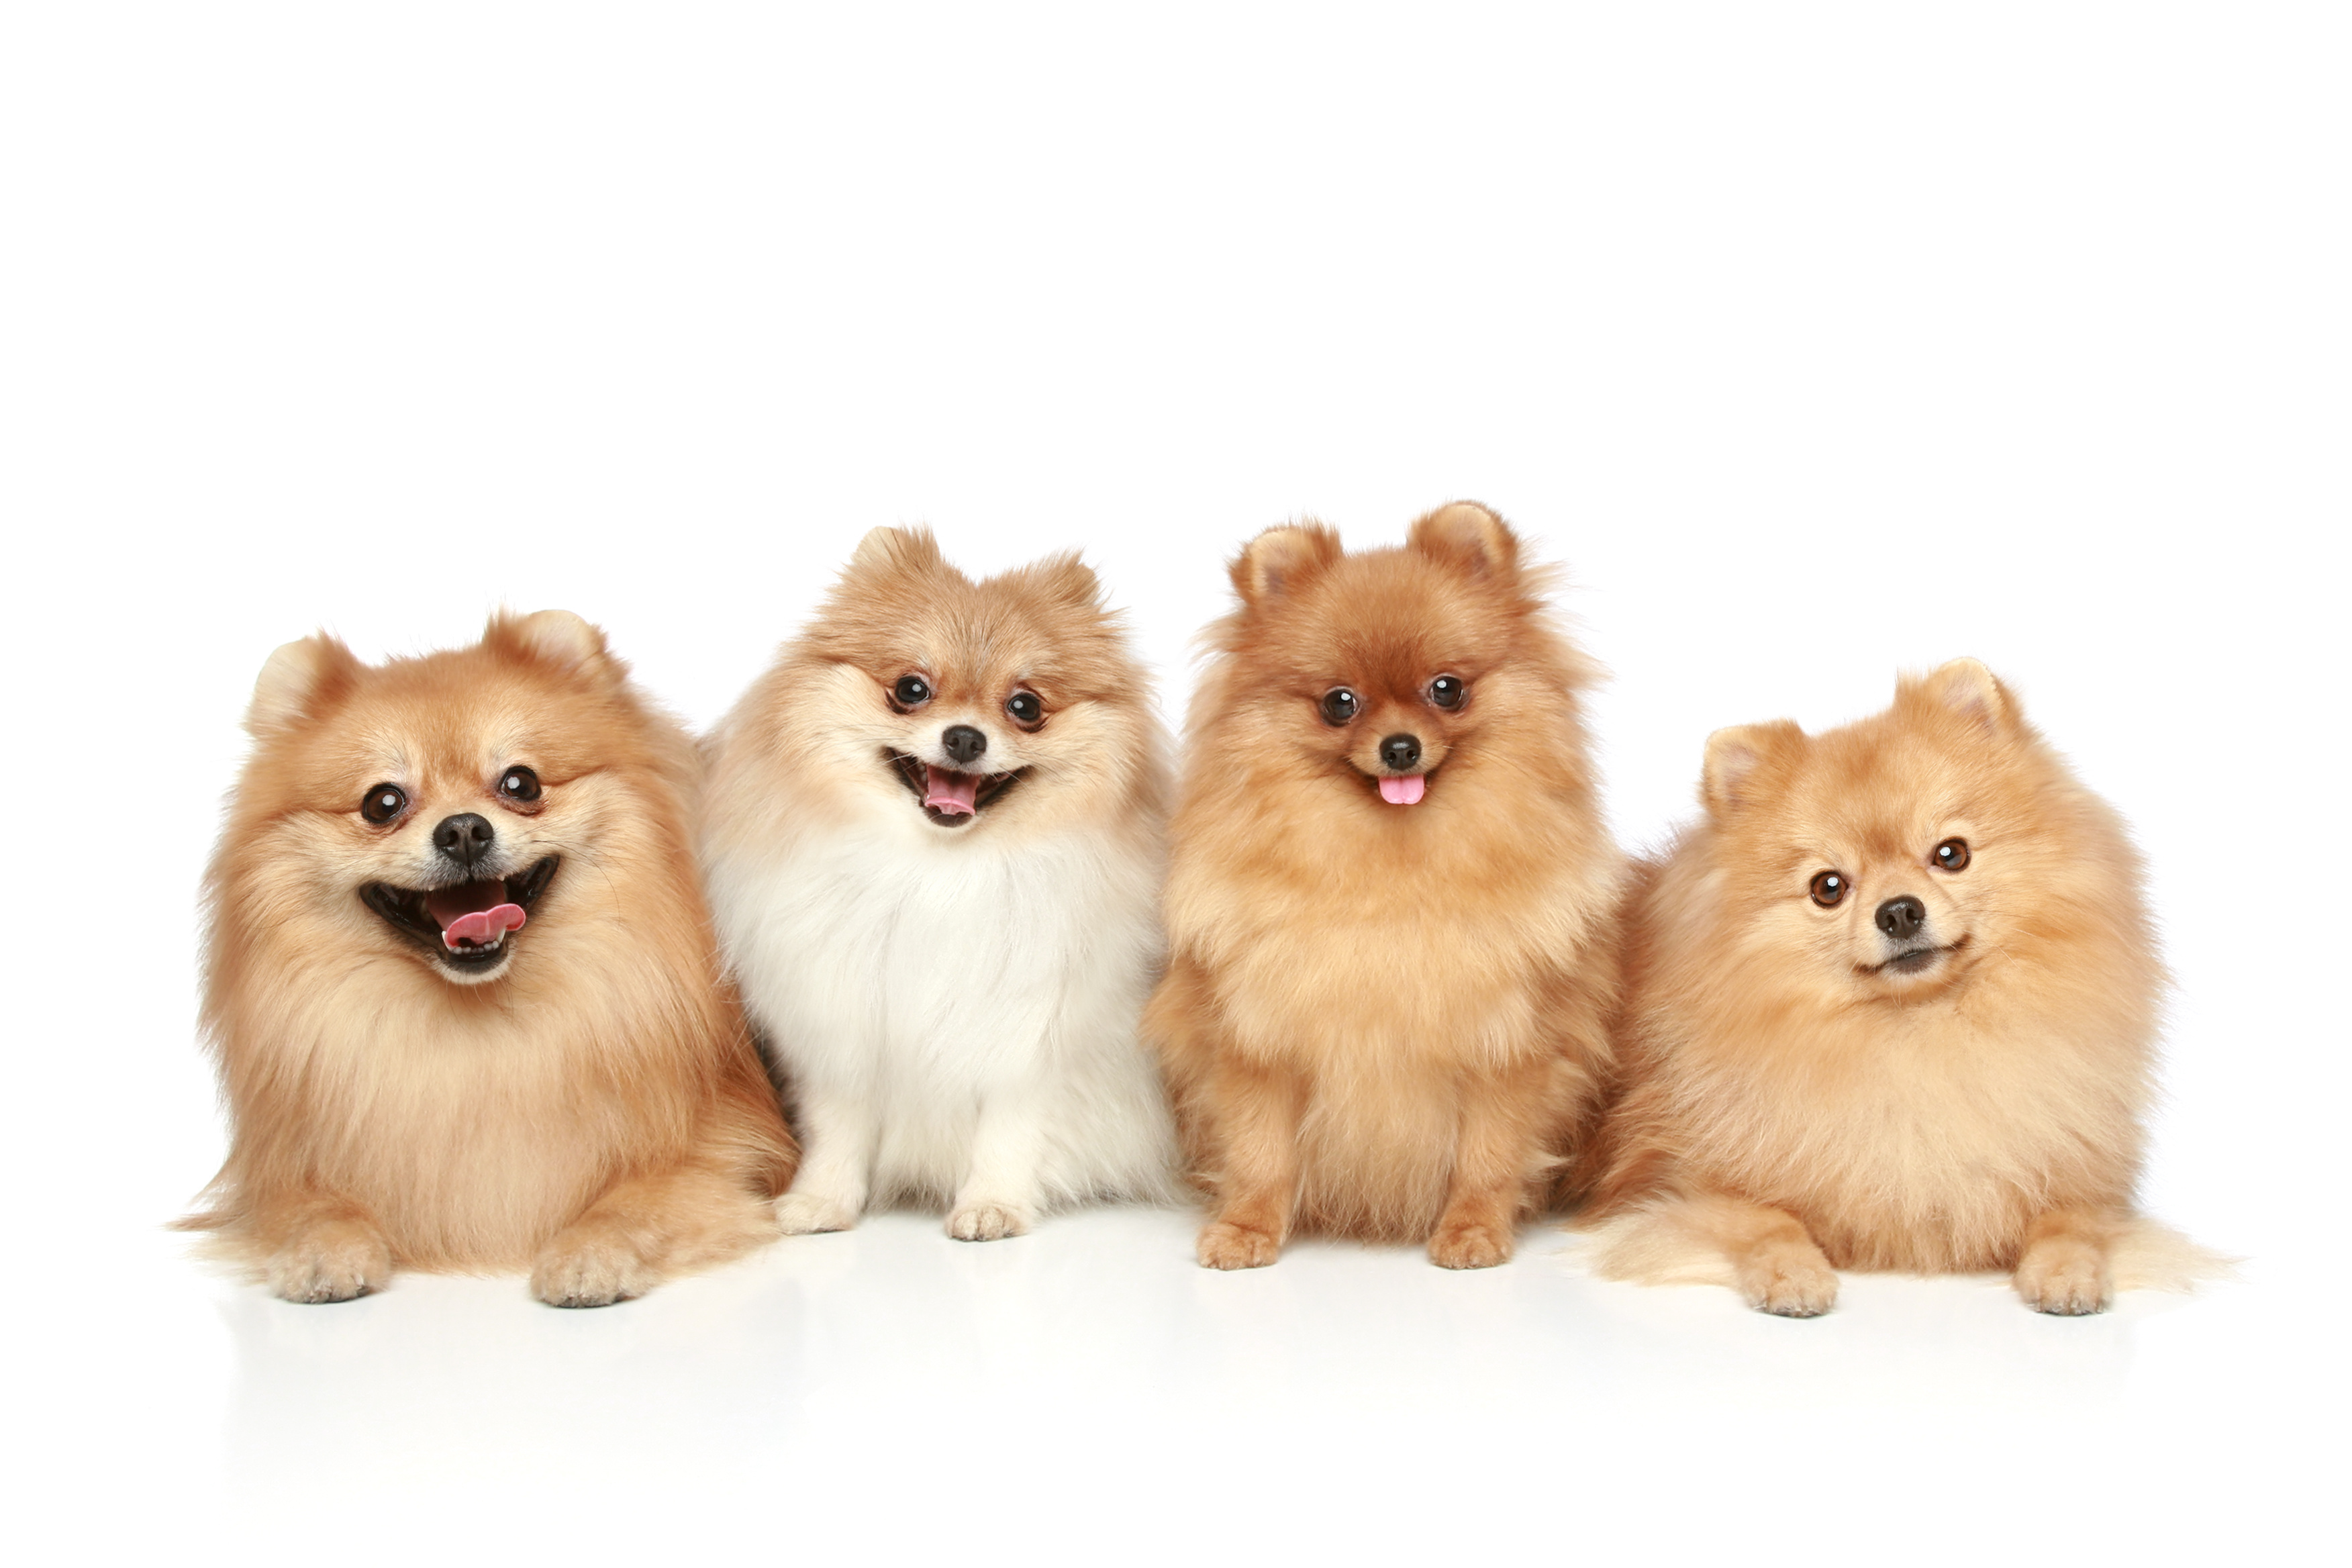 Four Pomeranian dogs sitting in front of white background